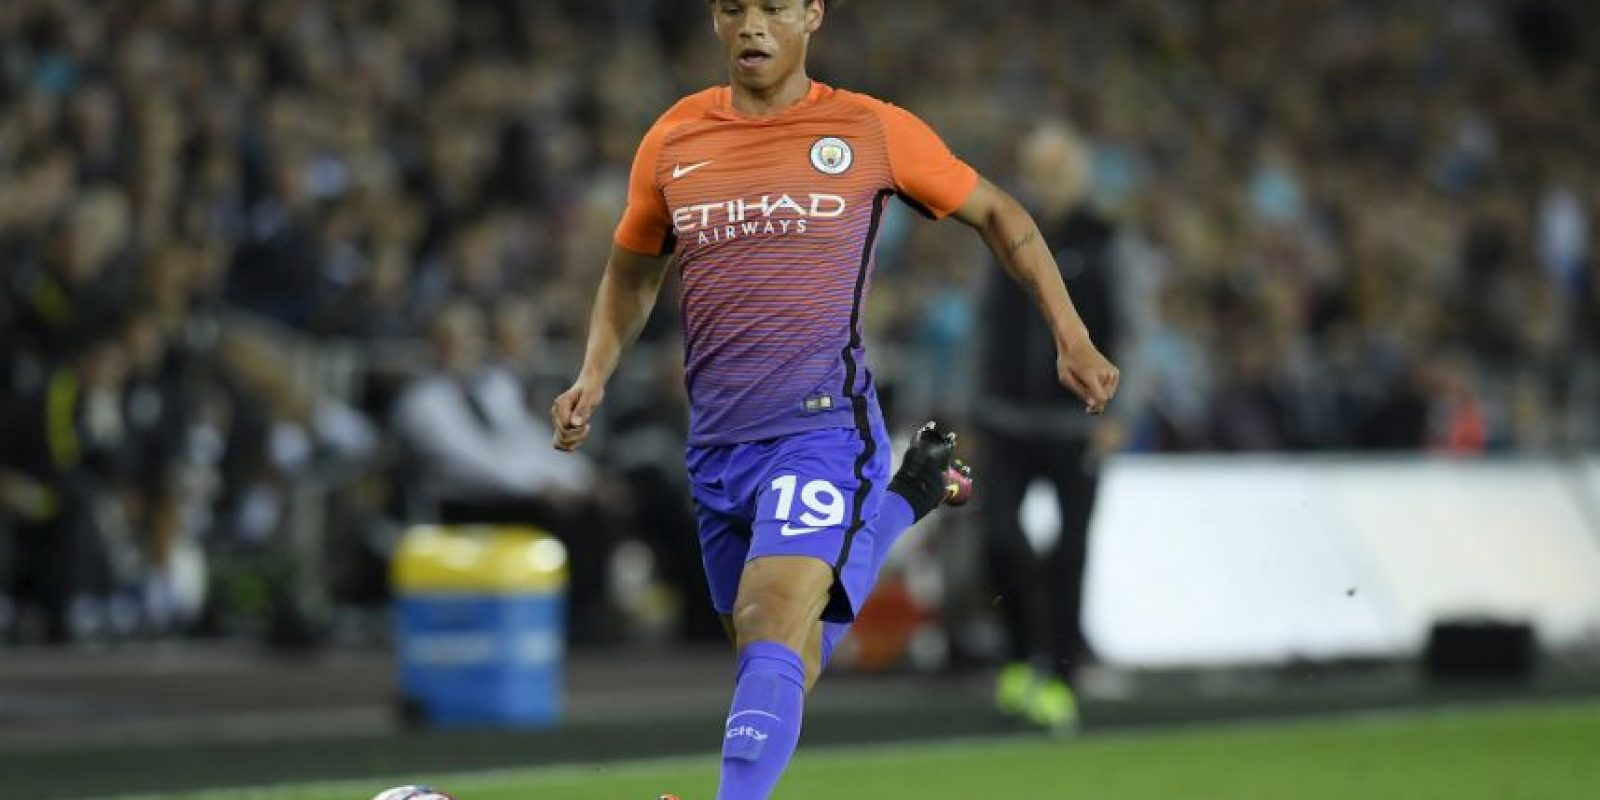 9.-Leroy Sané – 19 años (Manchester City) Foto: Getty Images